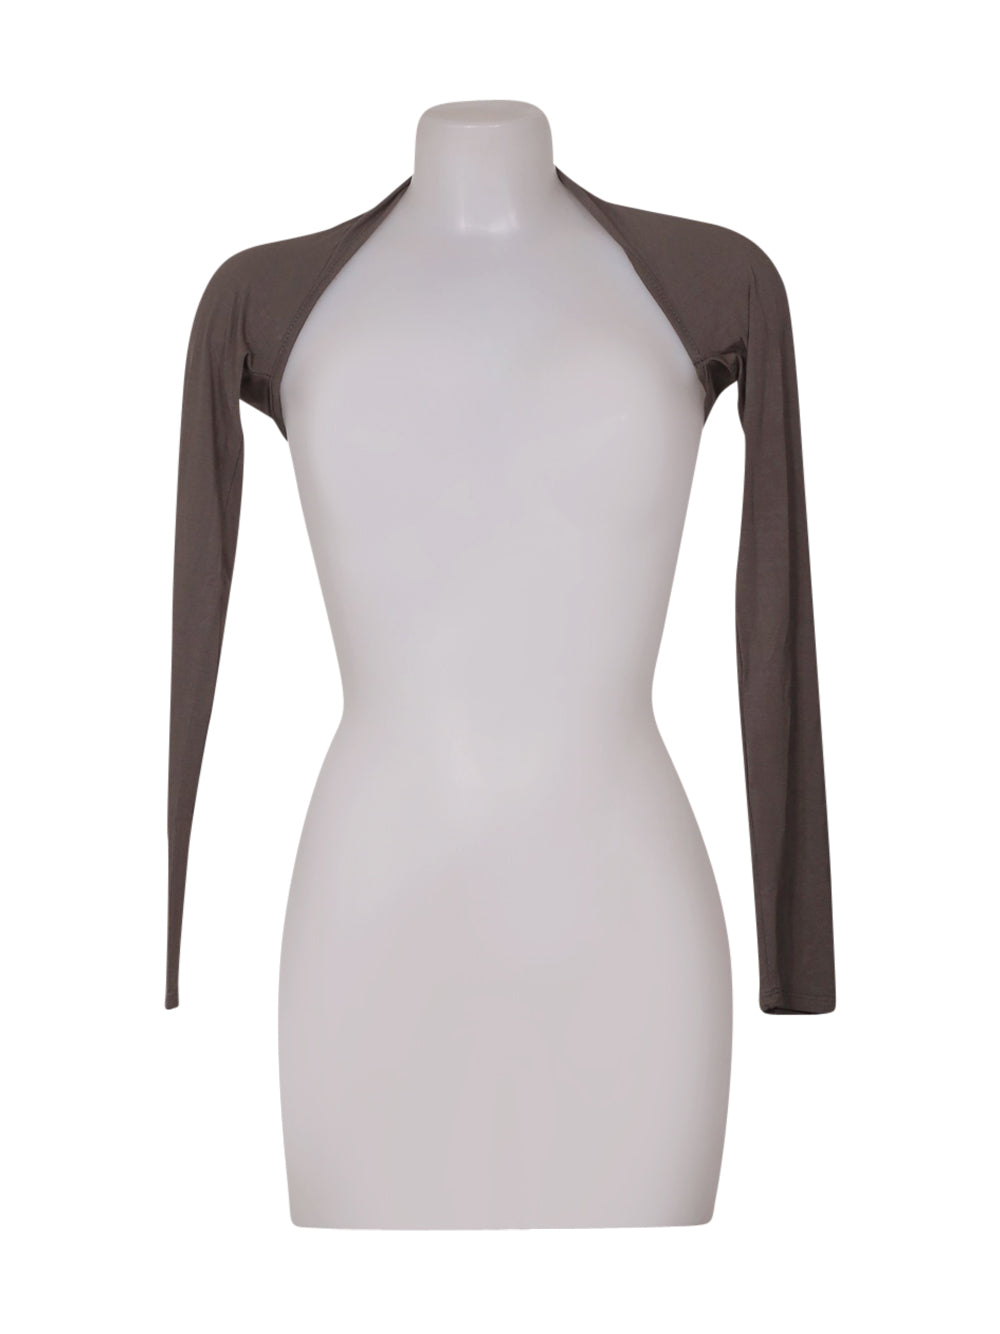 Front photo of Preloved Paolo Casalini Grey Woman's bolero - size 8/S